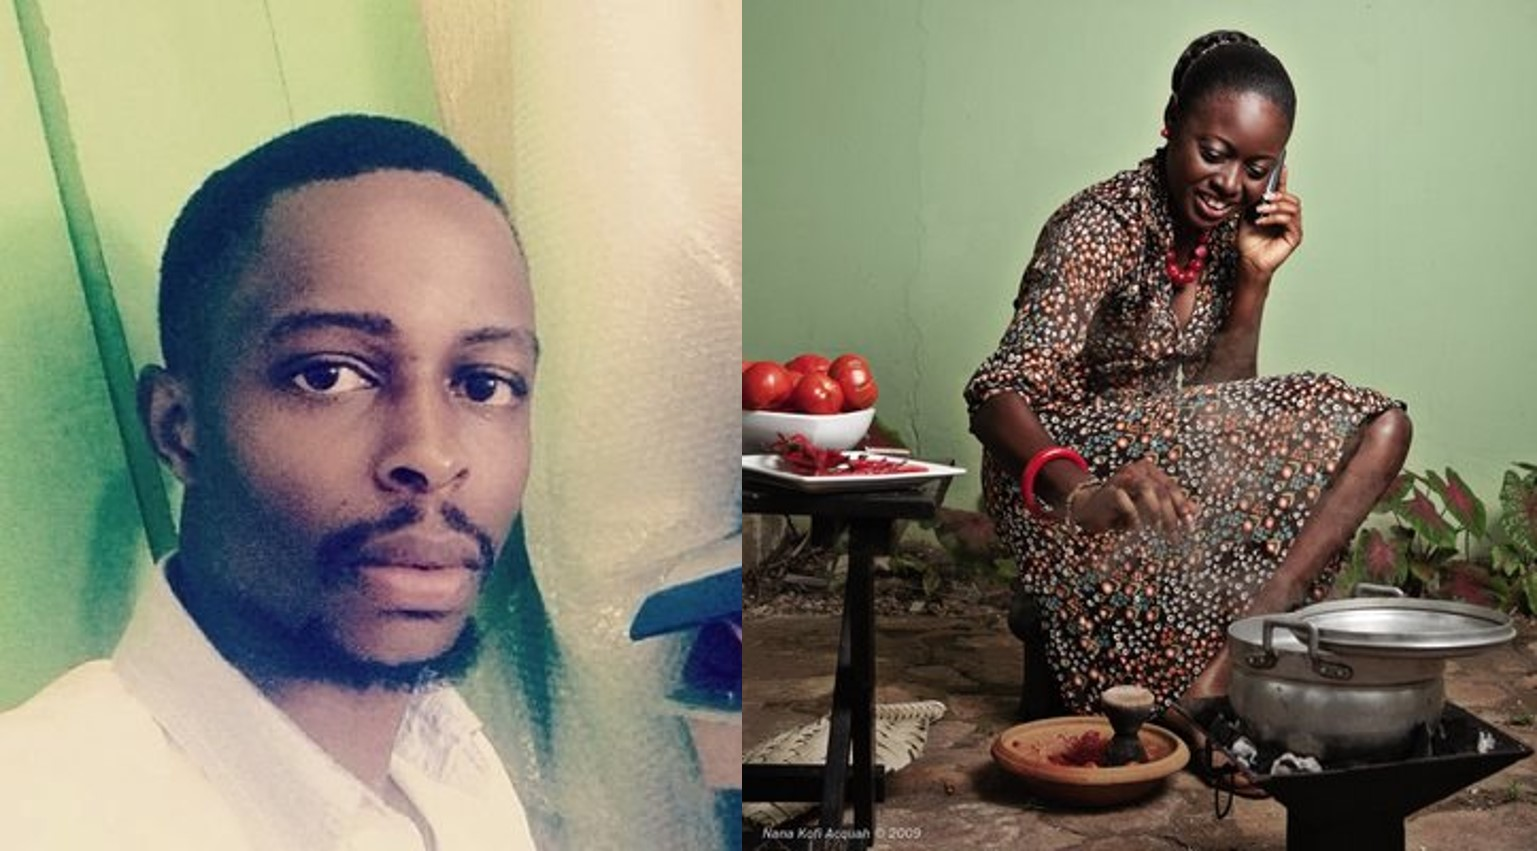 'Any girlfriend that cannot cook for you, your boys and dog is useless' – A Nigerian guy says